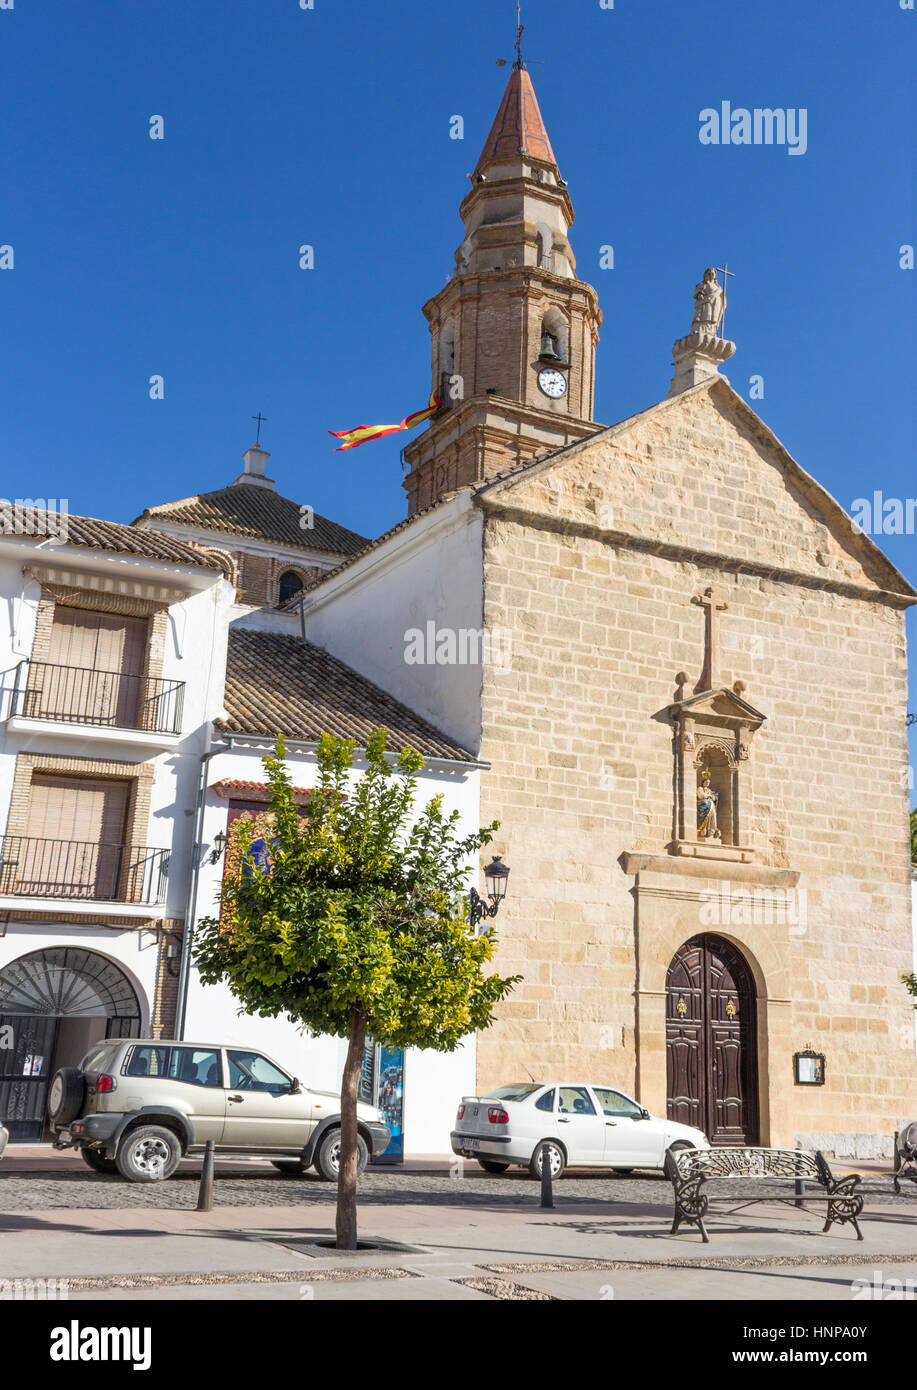 Benamejí, Cordoba Province, Andalusia, Spain. Church of the Immaculate Conception, Iglesia de la Inmaculada - Stock Image